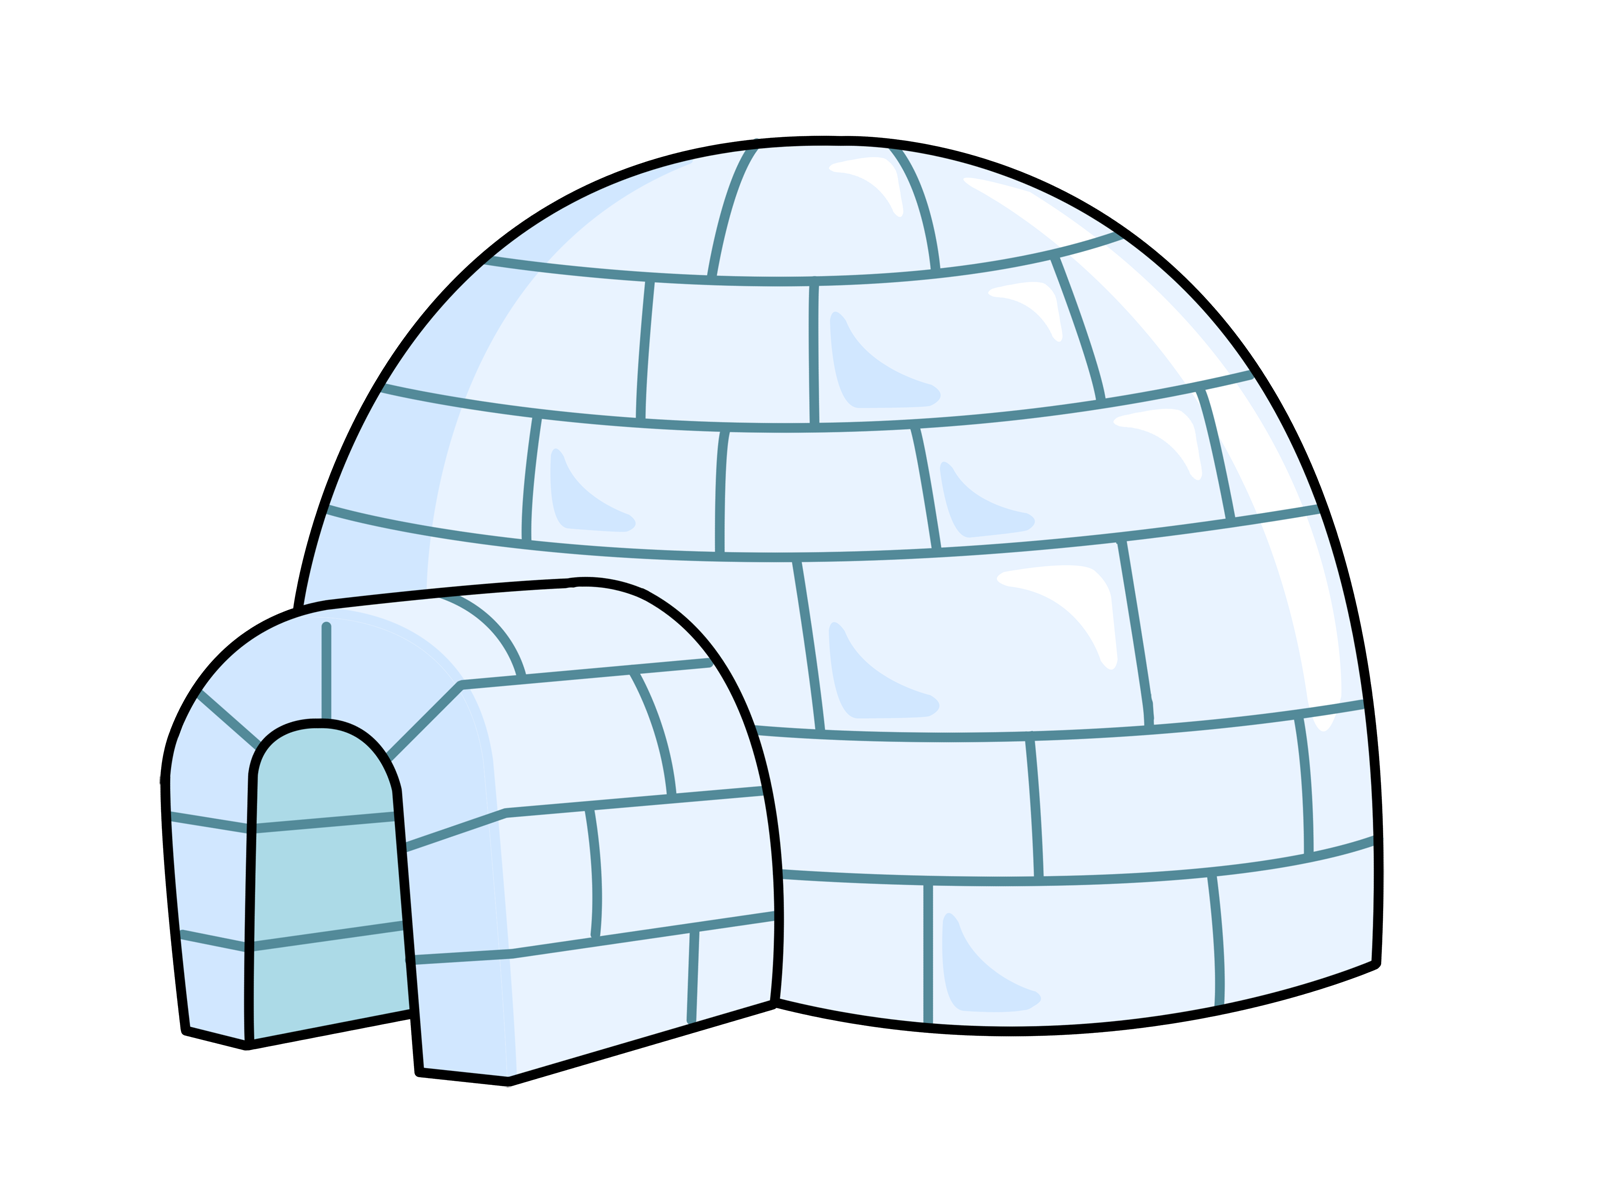 Igloo free to use clipart 2